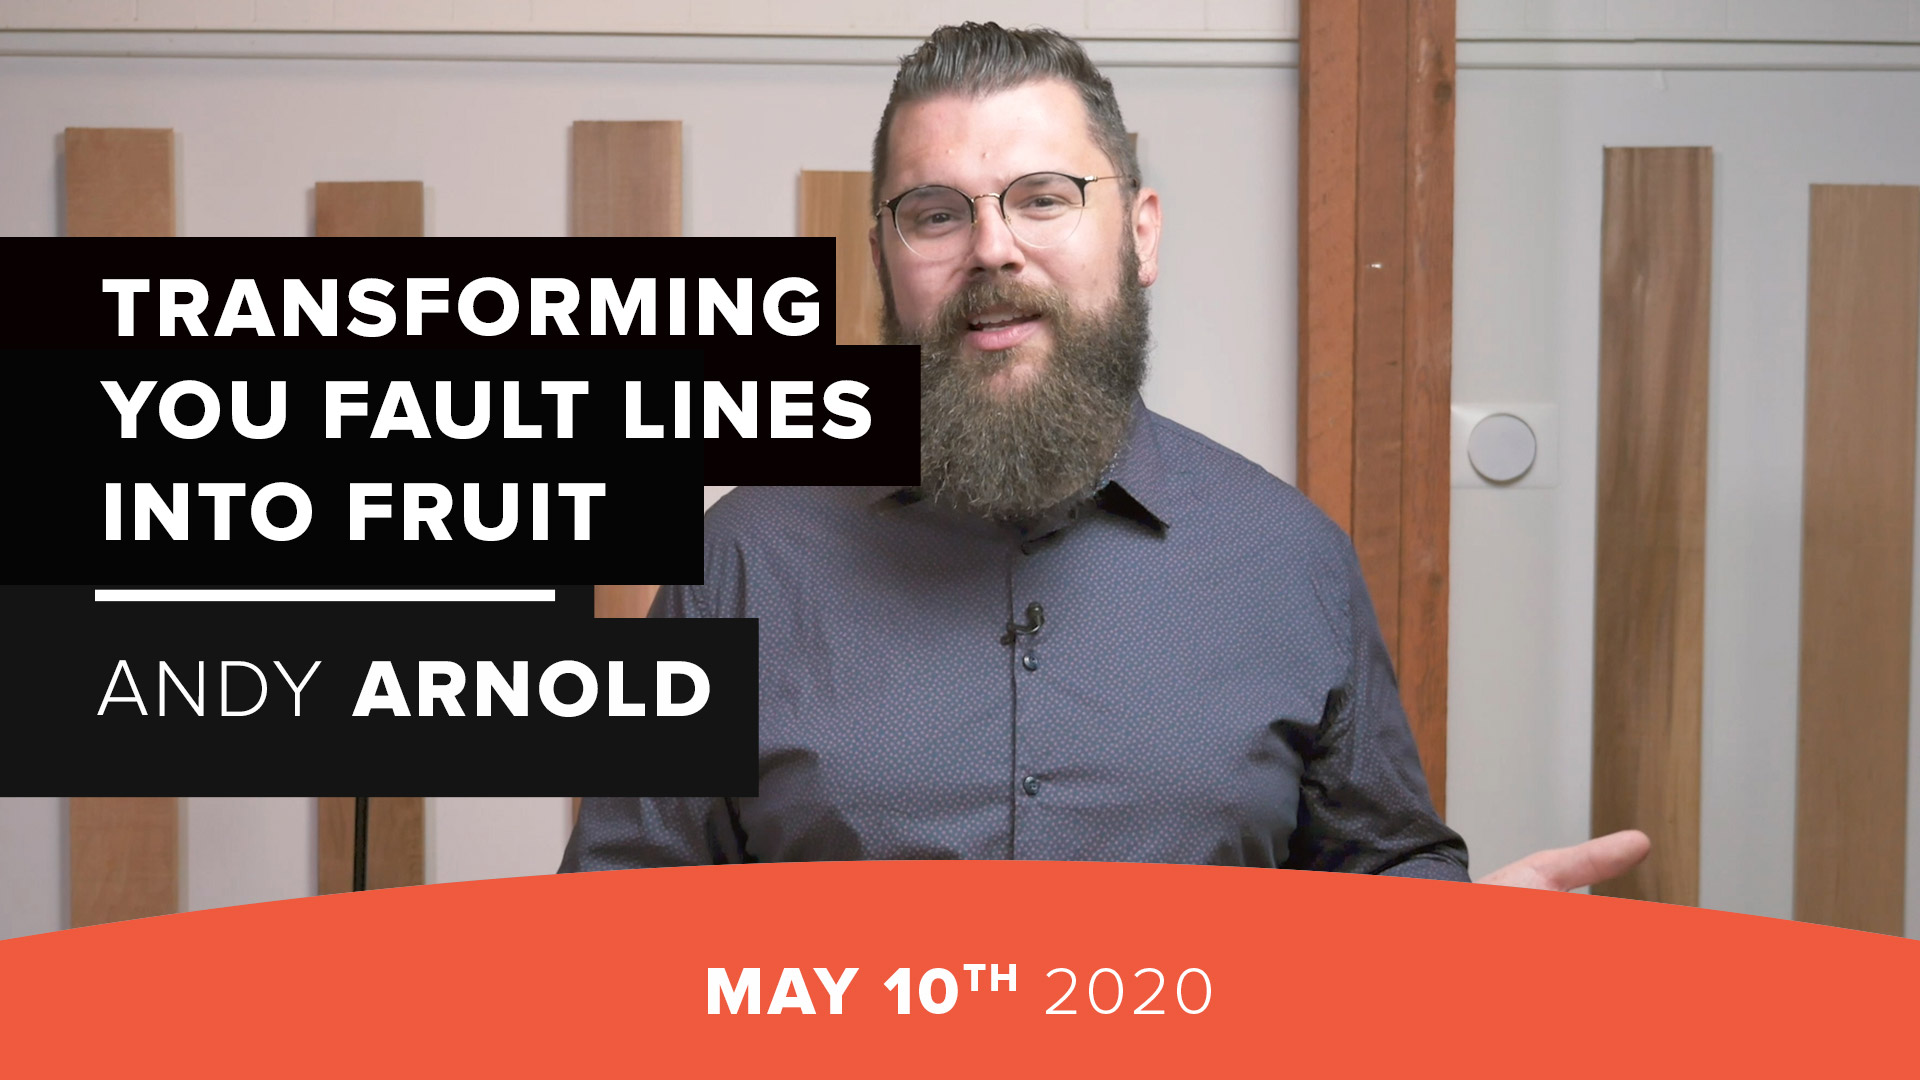 Transforming Fault Lines into Fruit